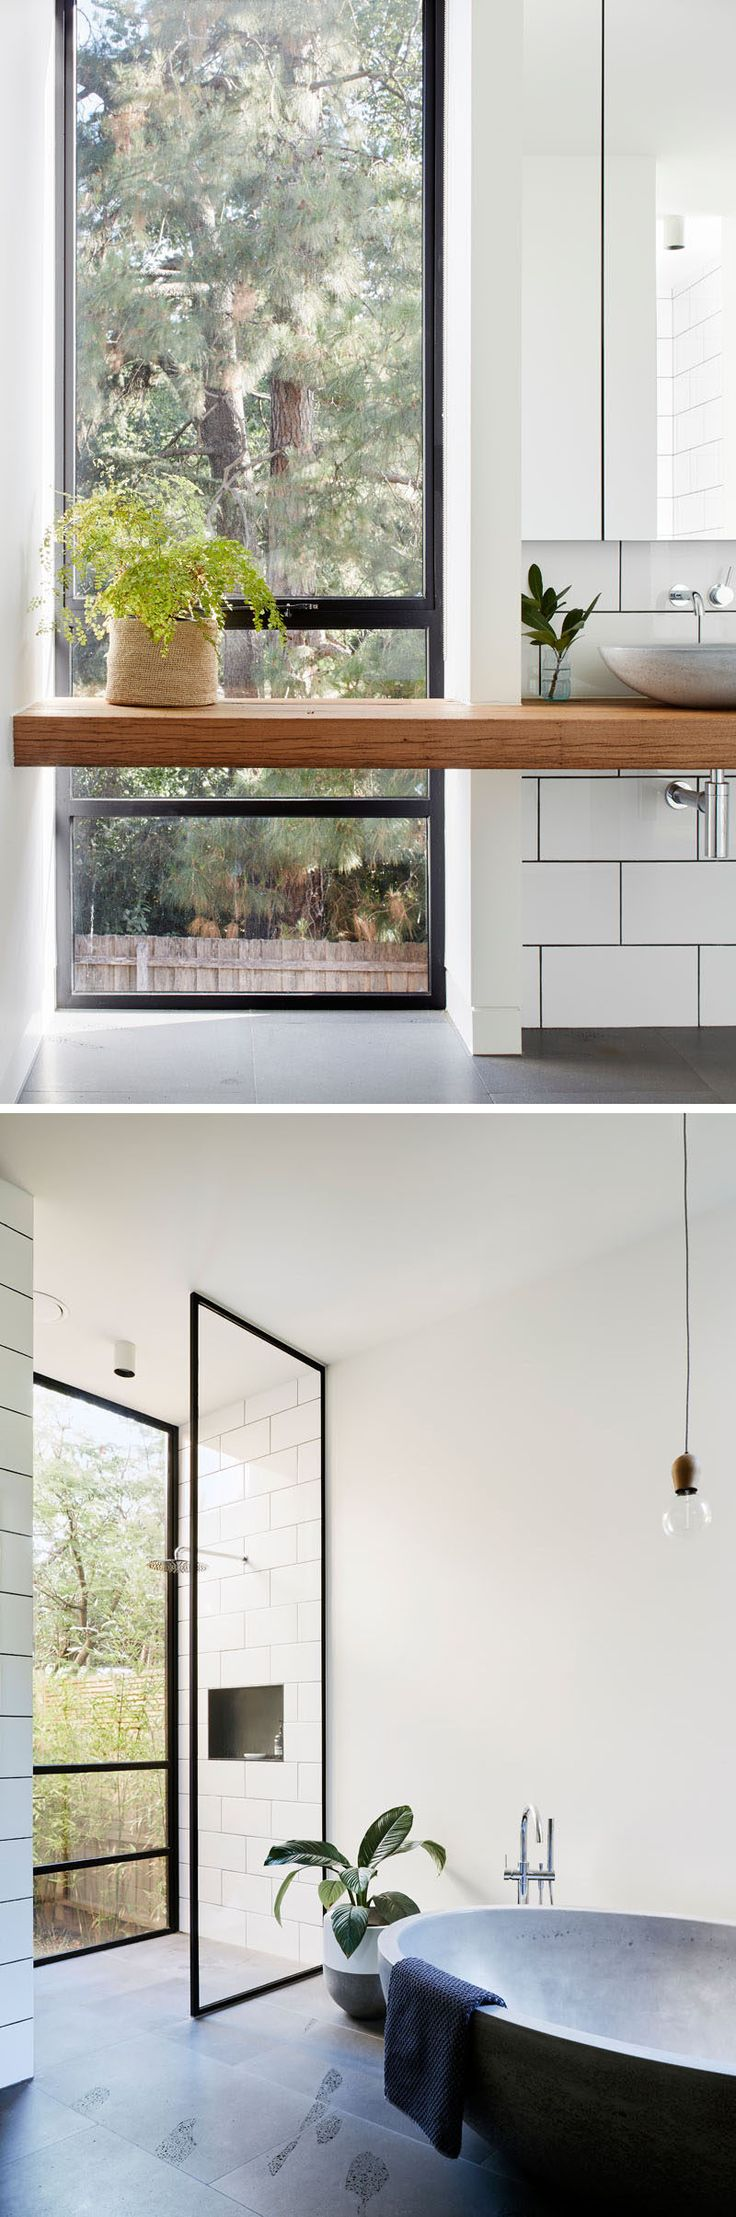 This modern bathroom is kept bright and airy with the use of glass partitions and white walls and tiles. Black accents are used throughout in the form of window frames and tile grout.